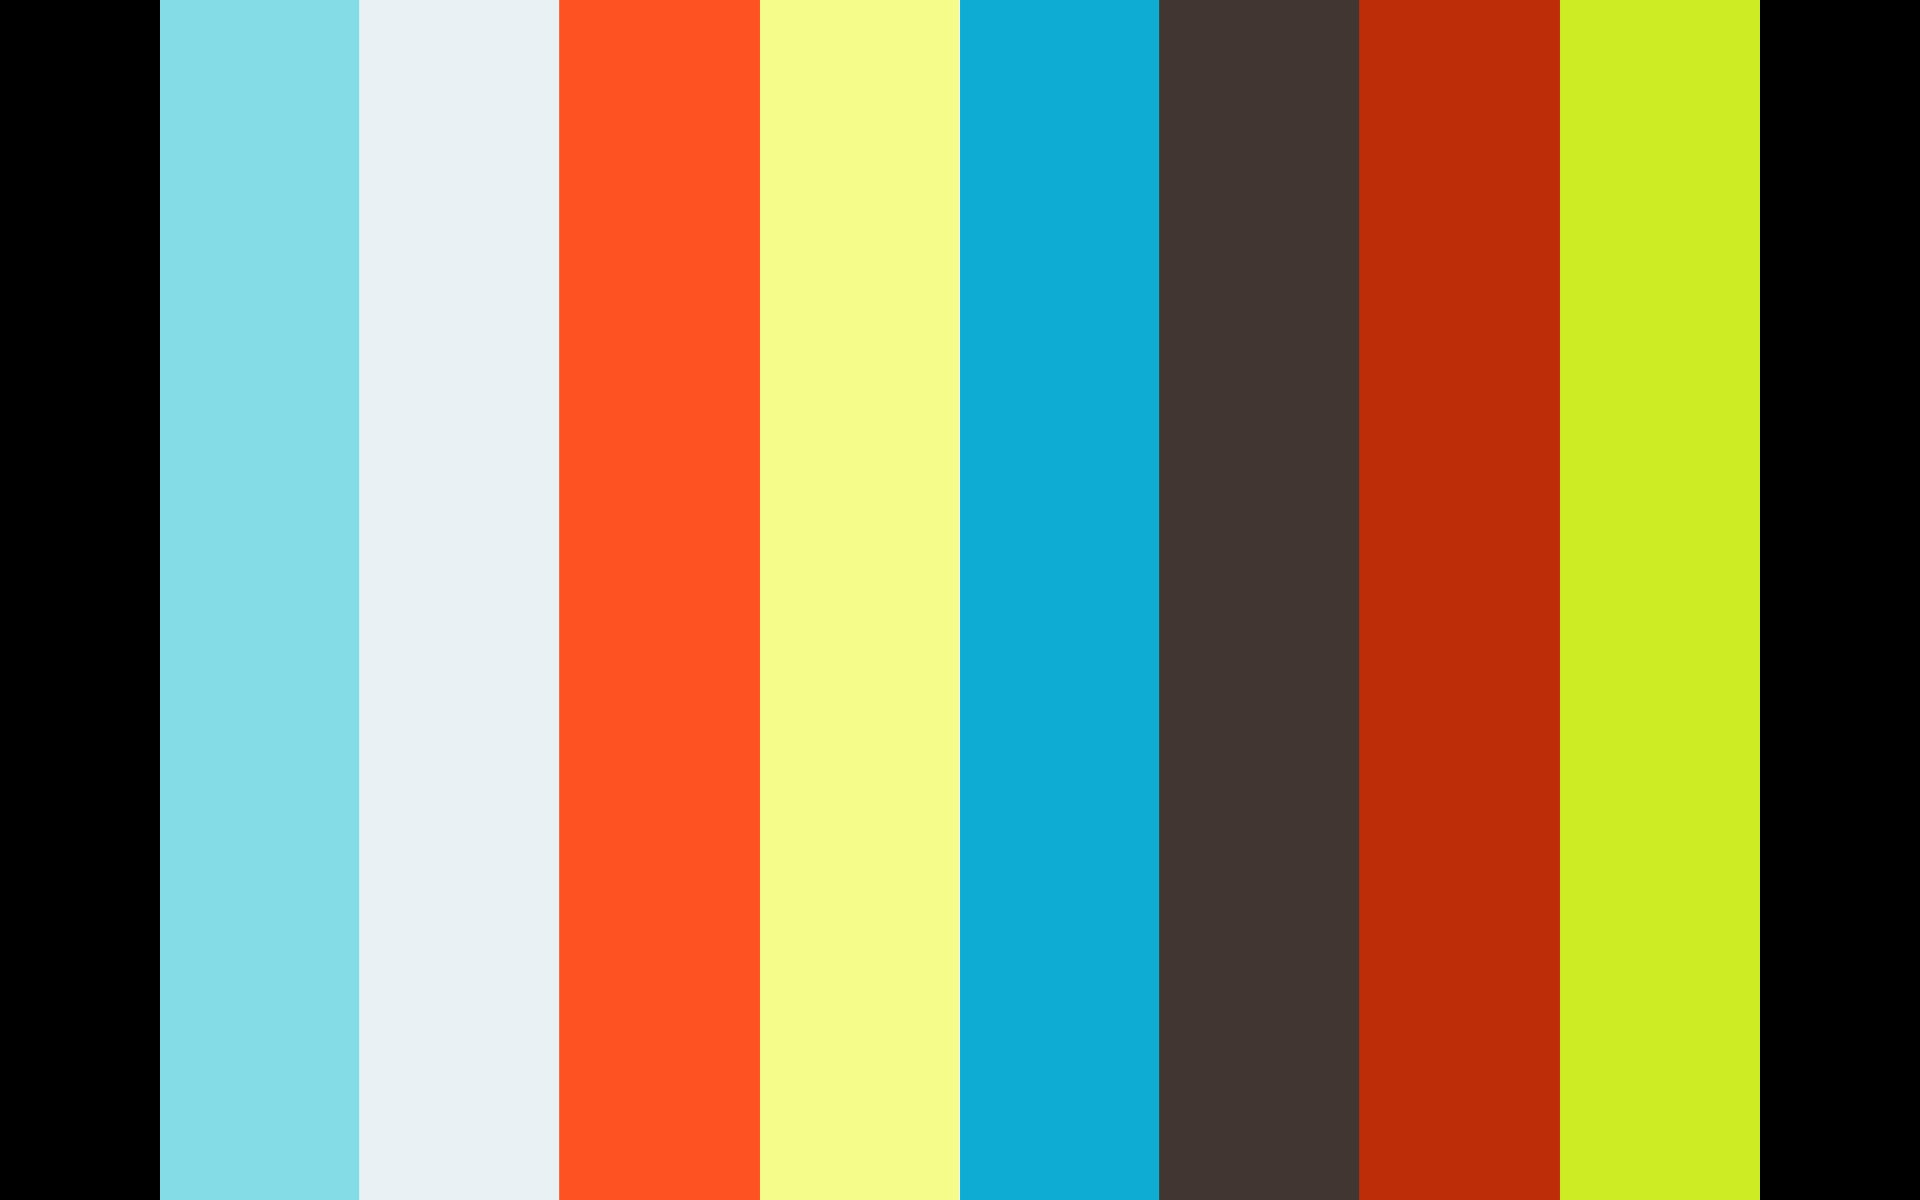 Defining an Application